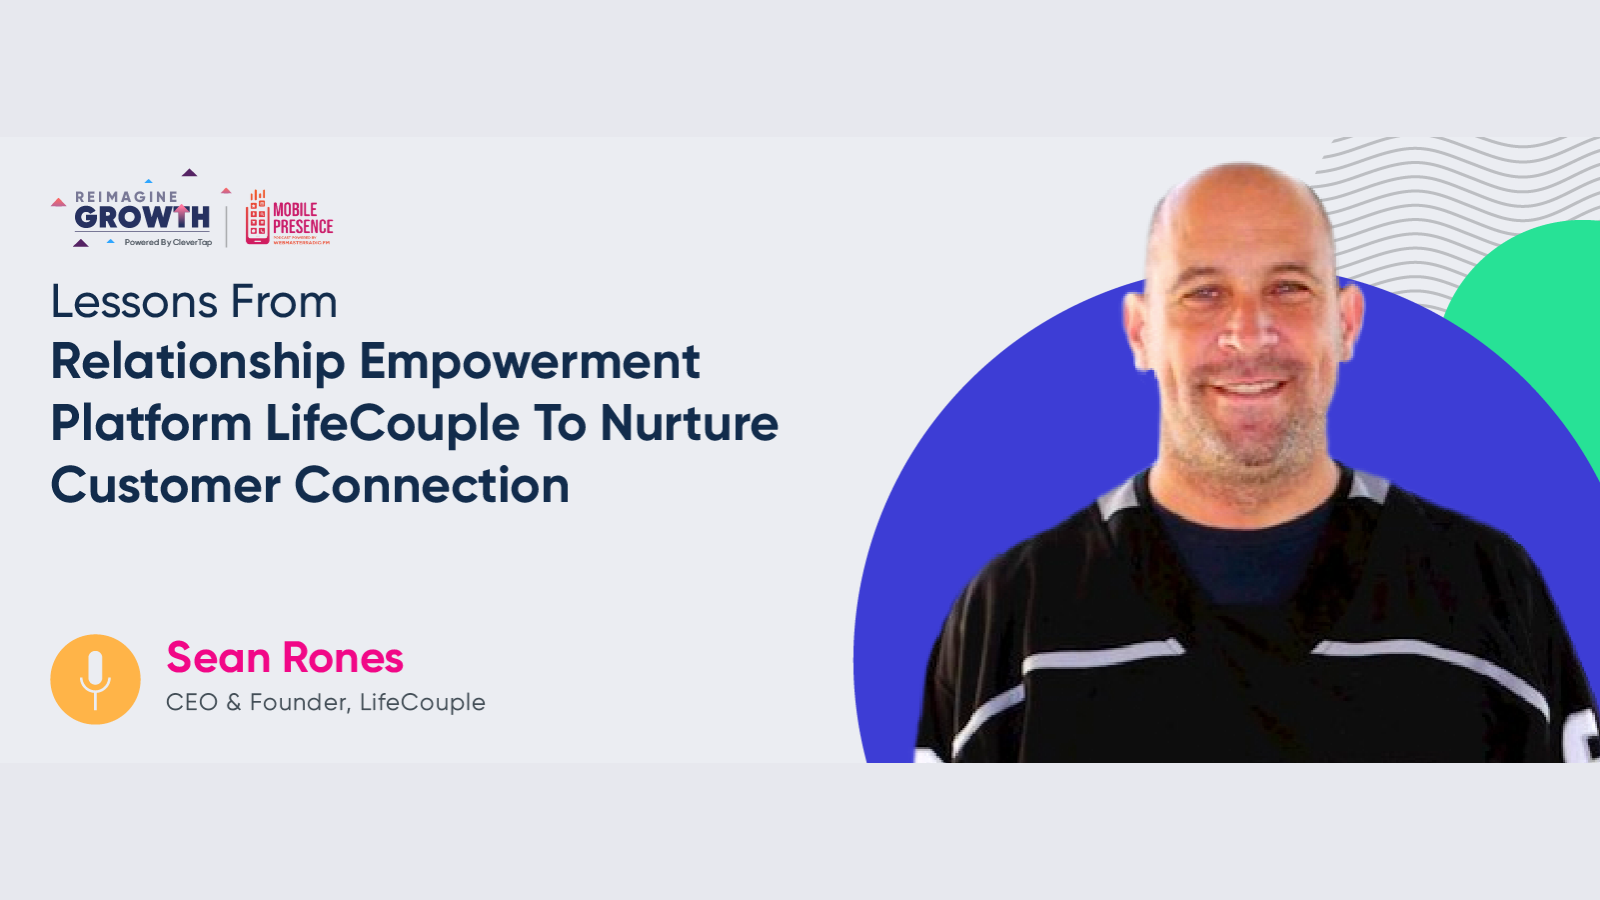 Lessons From Relationship Empowerment Platform LifeCouple To Nurture Customer Connection